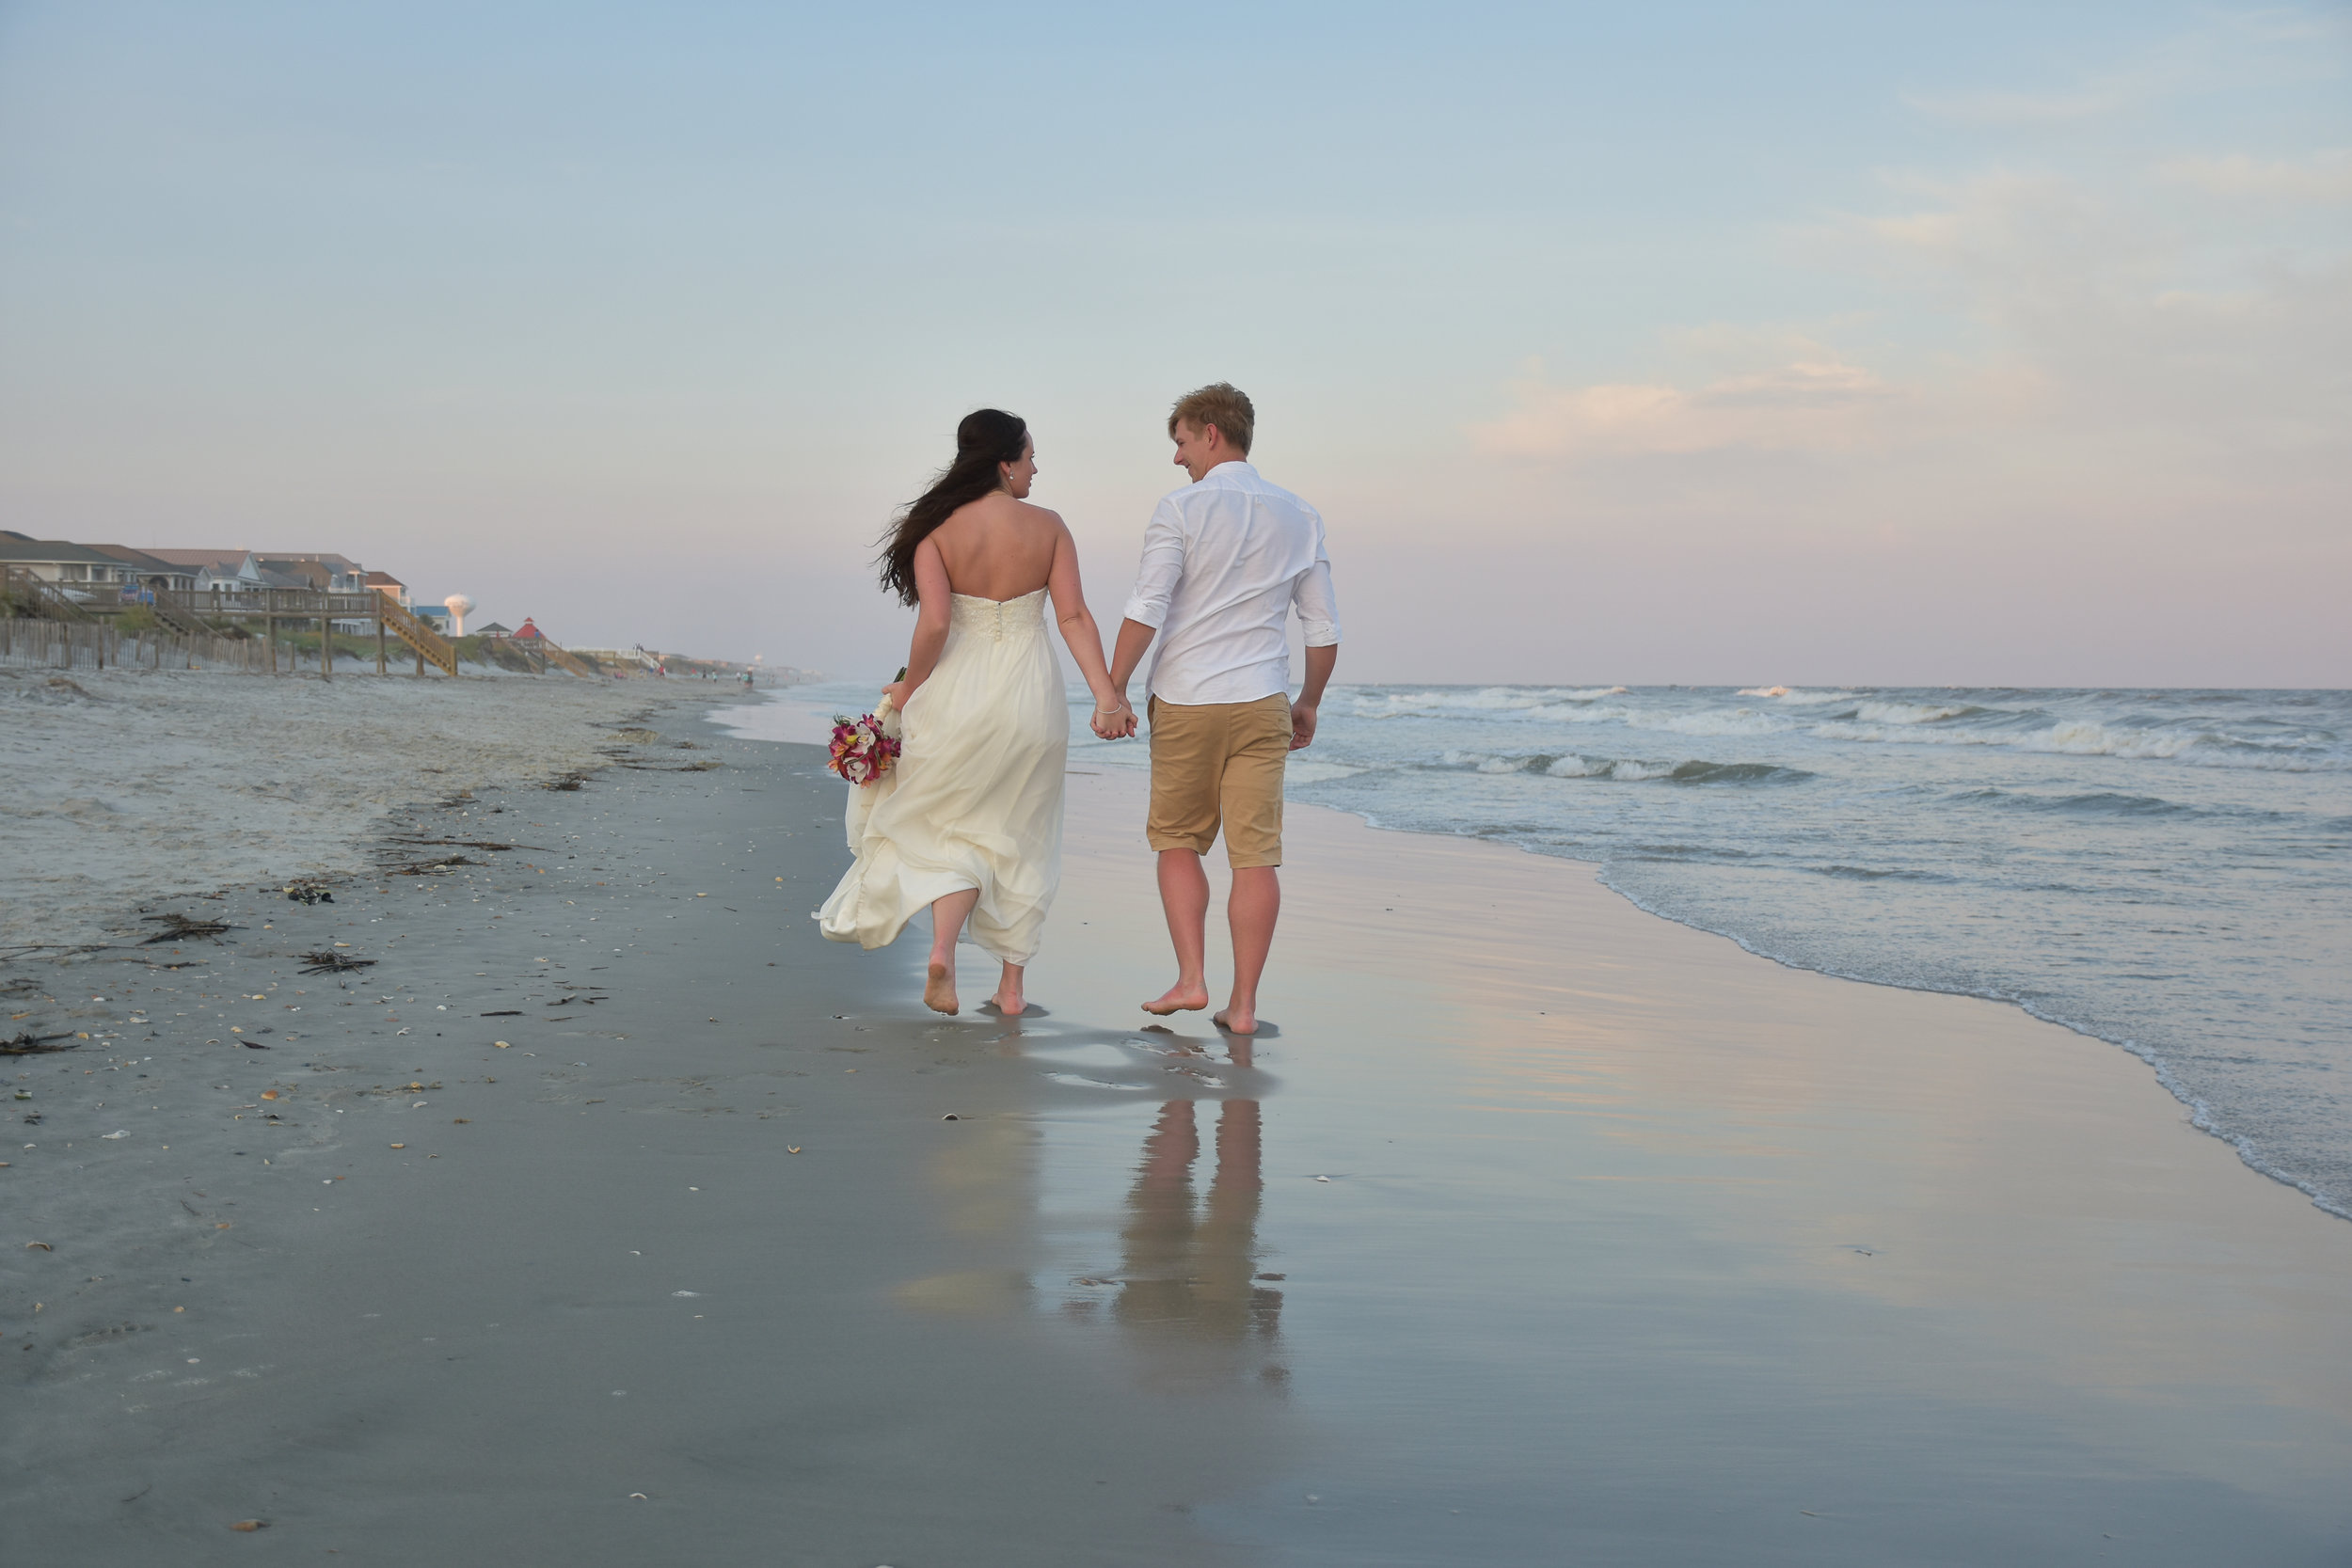 - Bride and Groom walking down the beach holding hands at Ocean Isle Beach, NC. Bride is holding bouquet. Picture taken during nautical twilight.